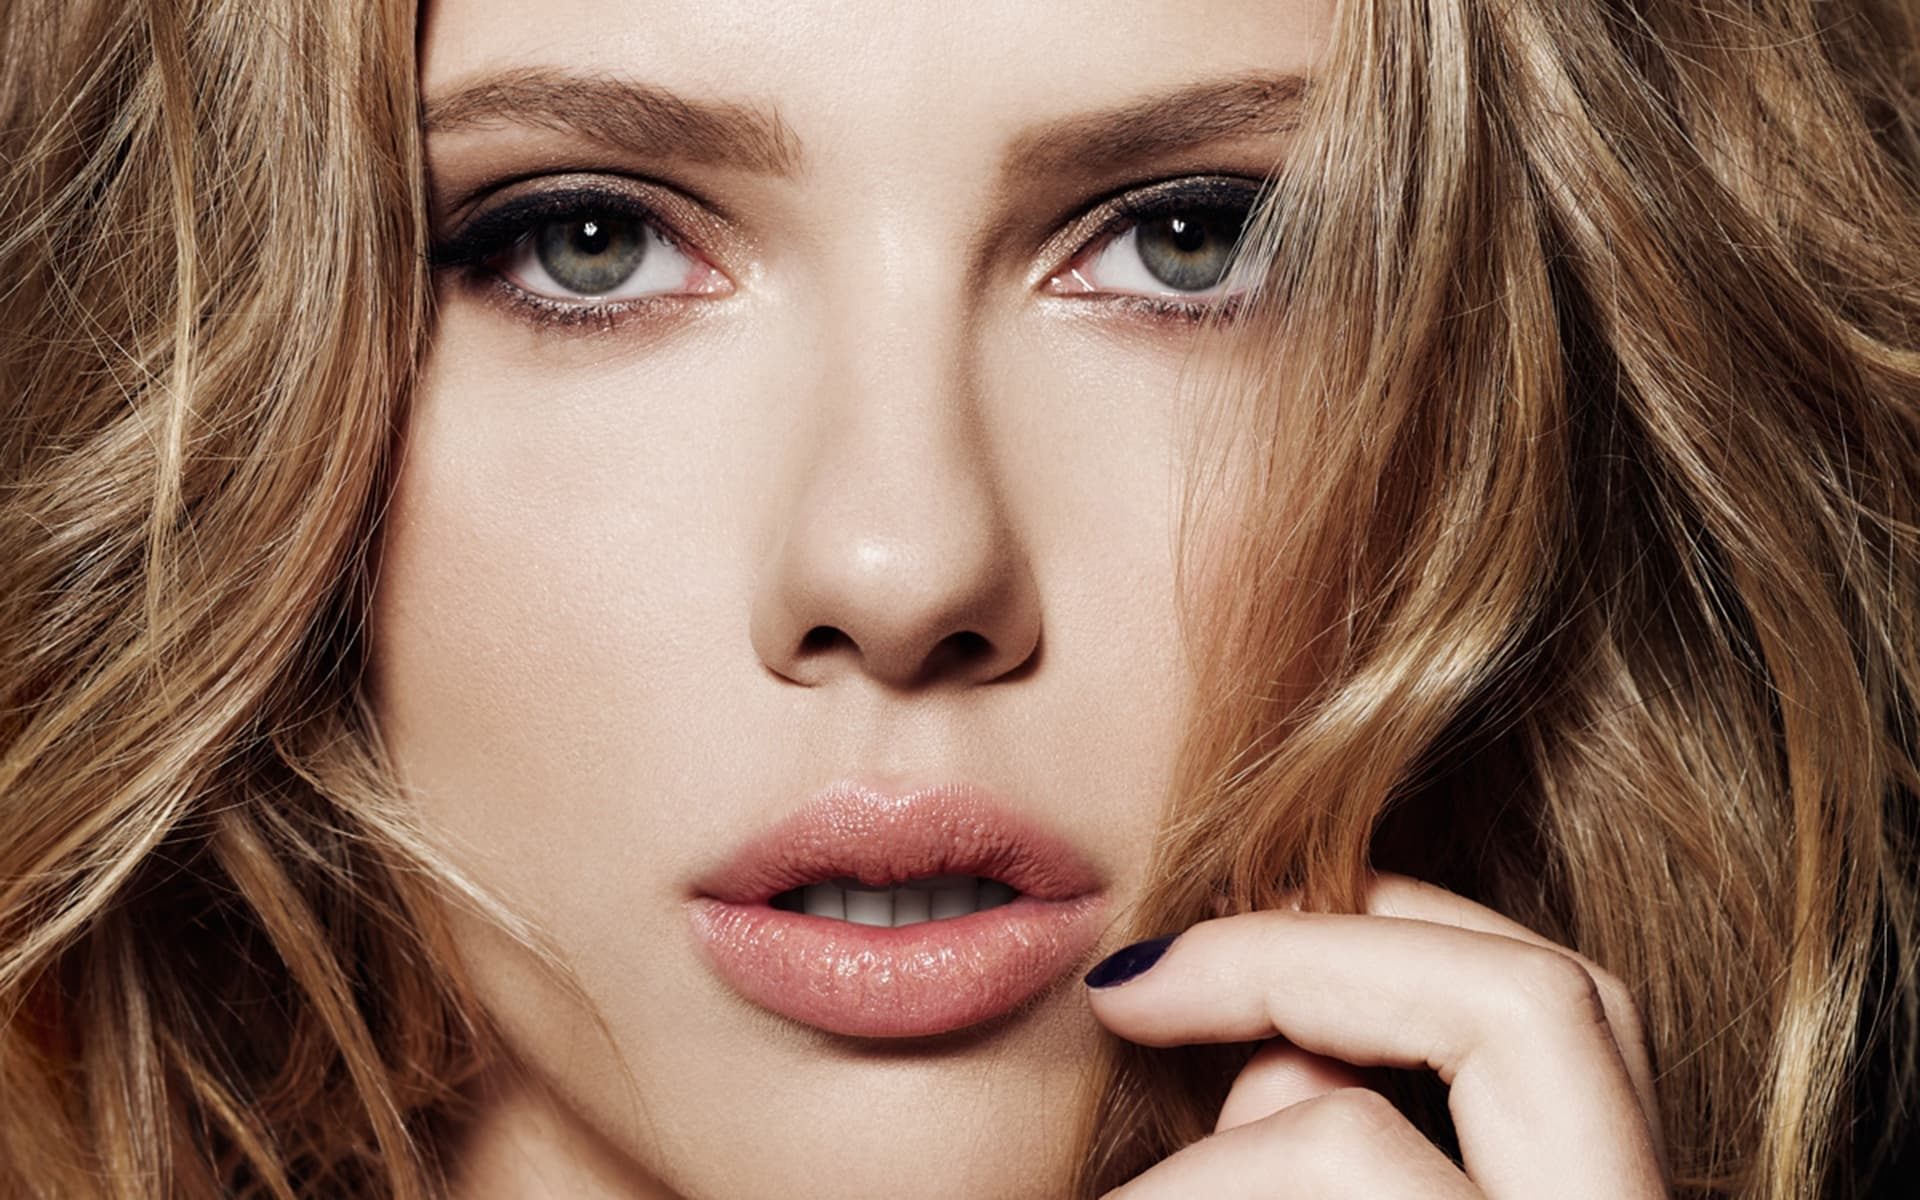 Scarlett Johansson wallpaper for desktop eyes lips Scarlett Johansson